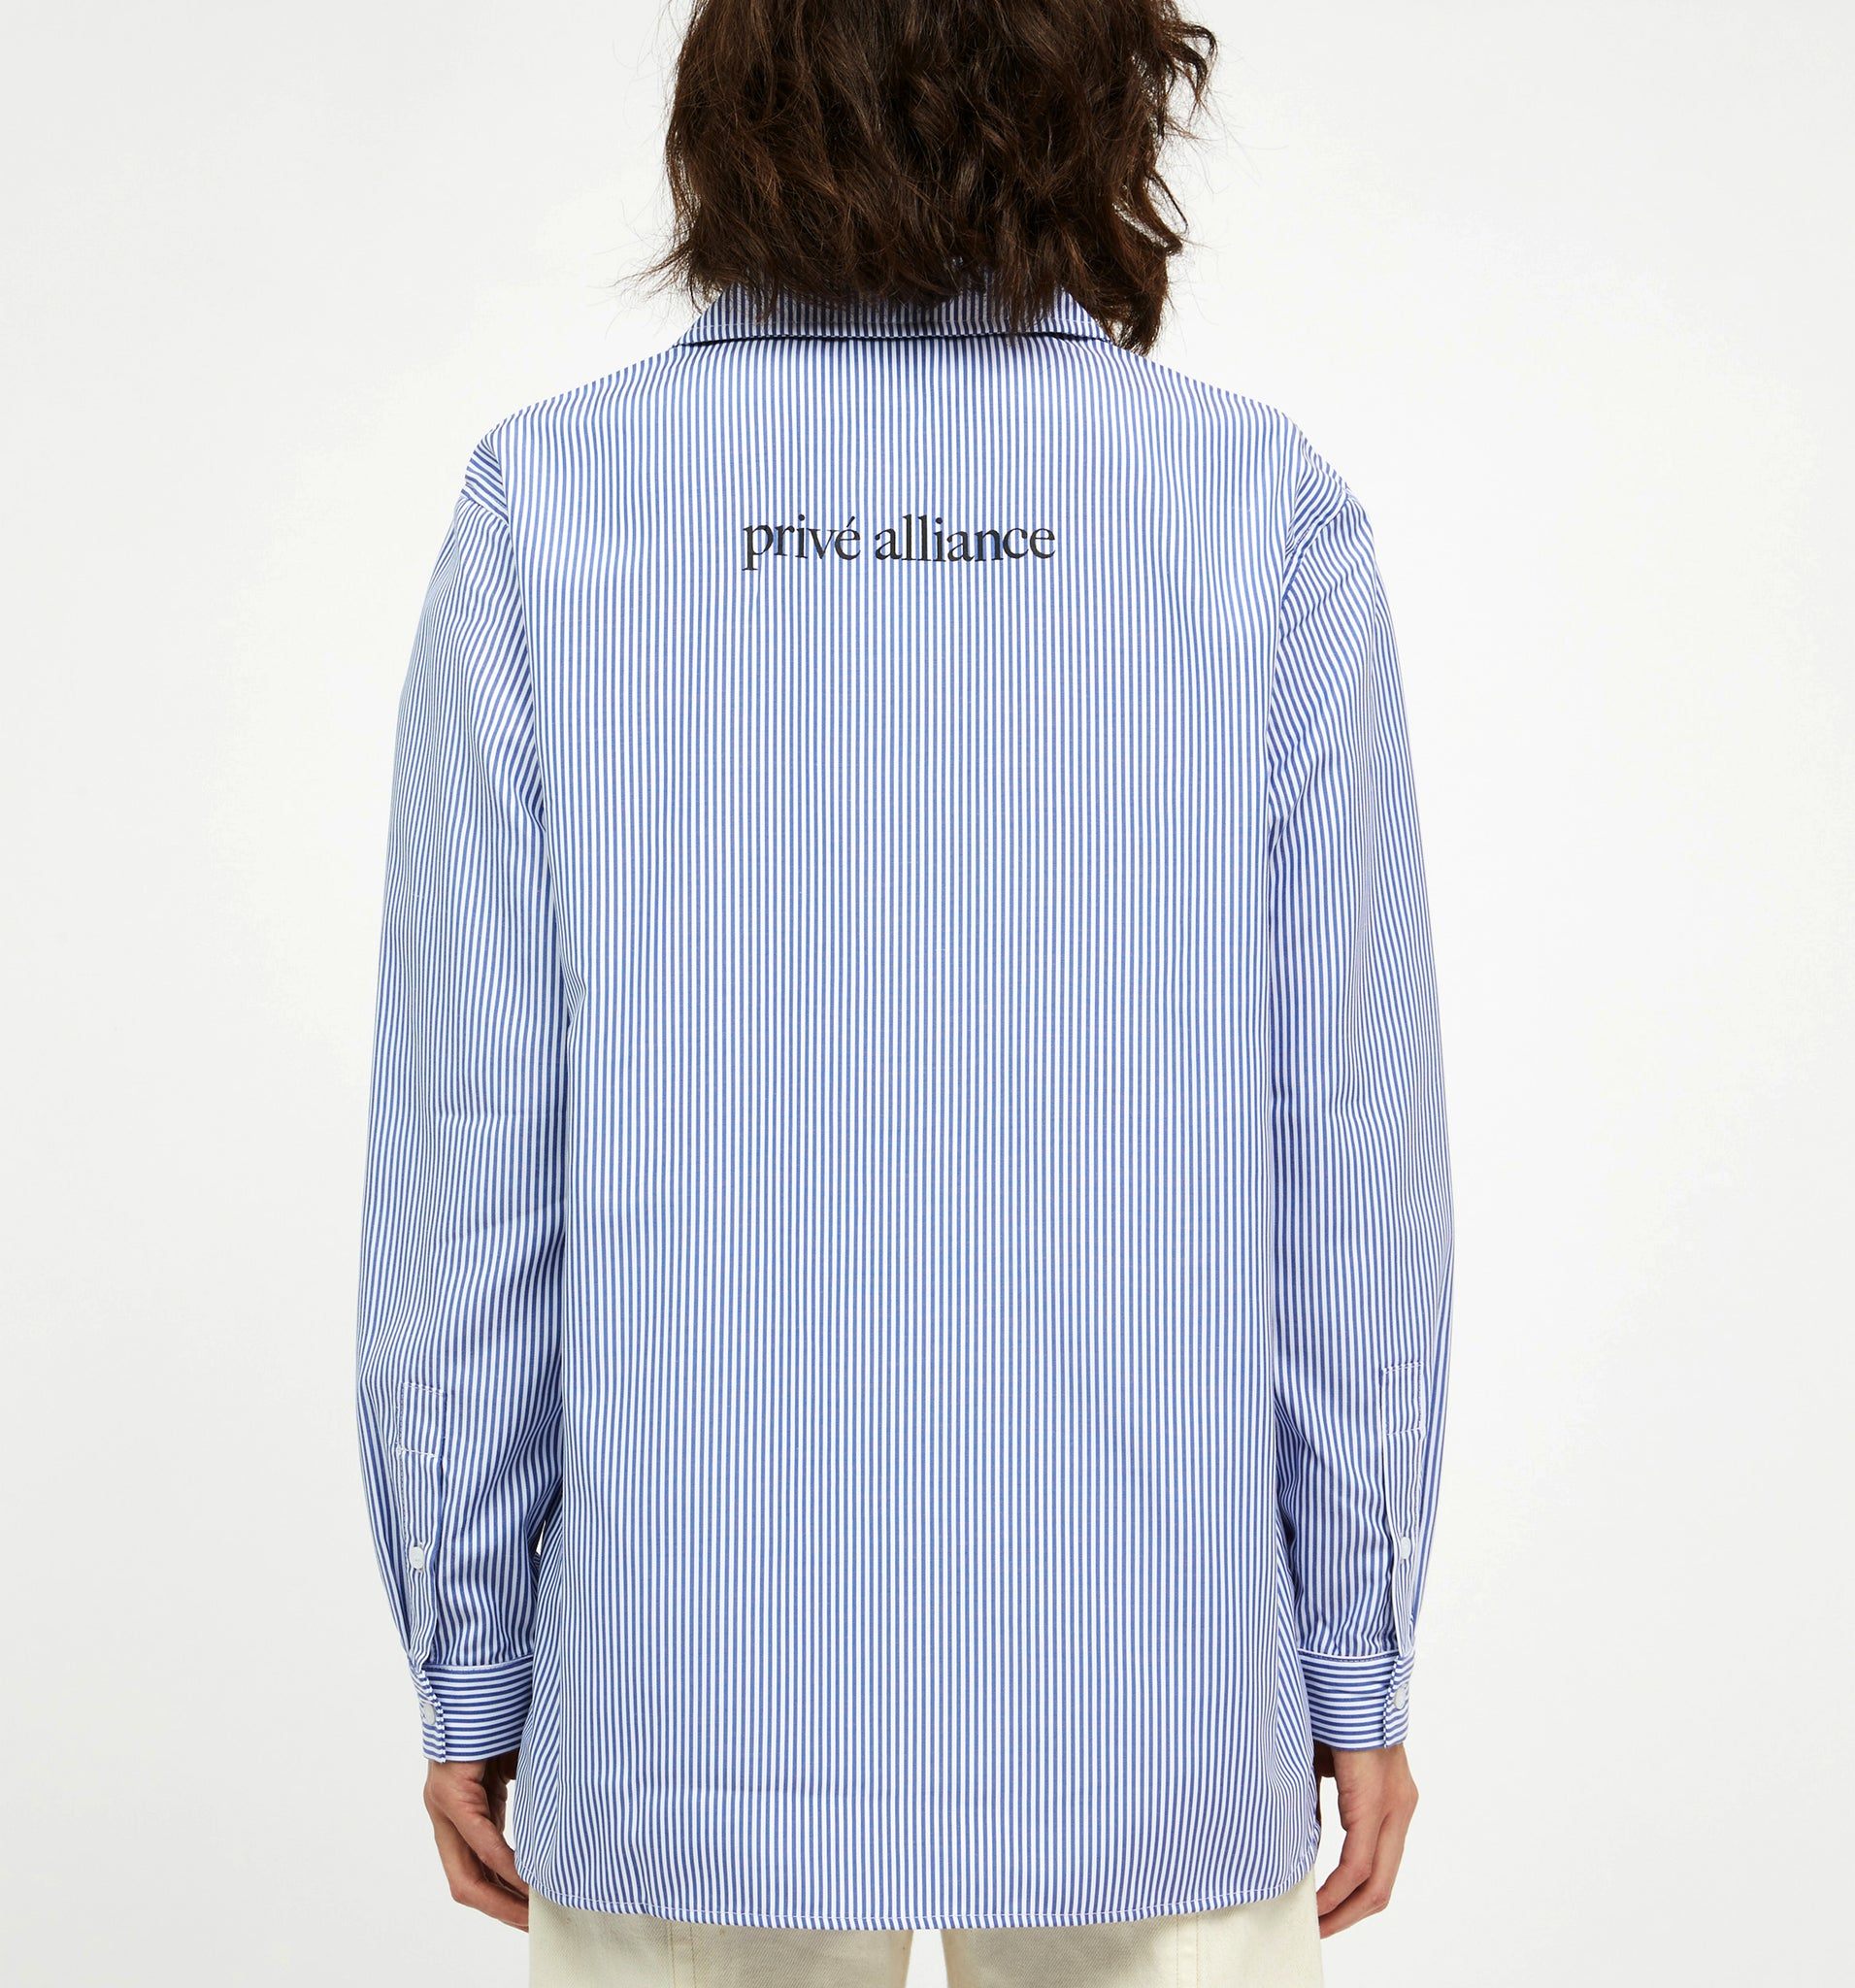 Privé Alliance Women's Breakfast Club Shirt